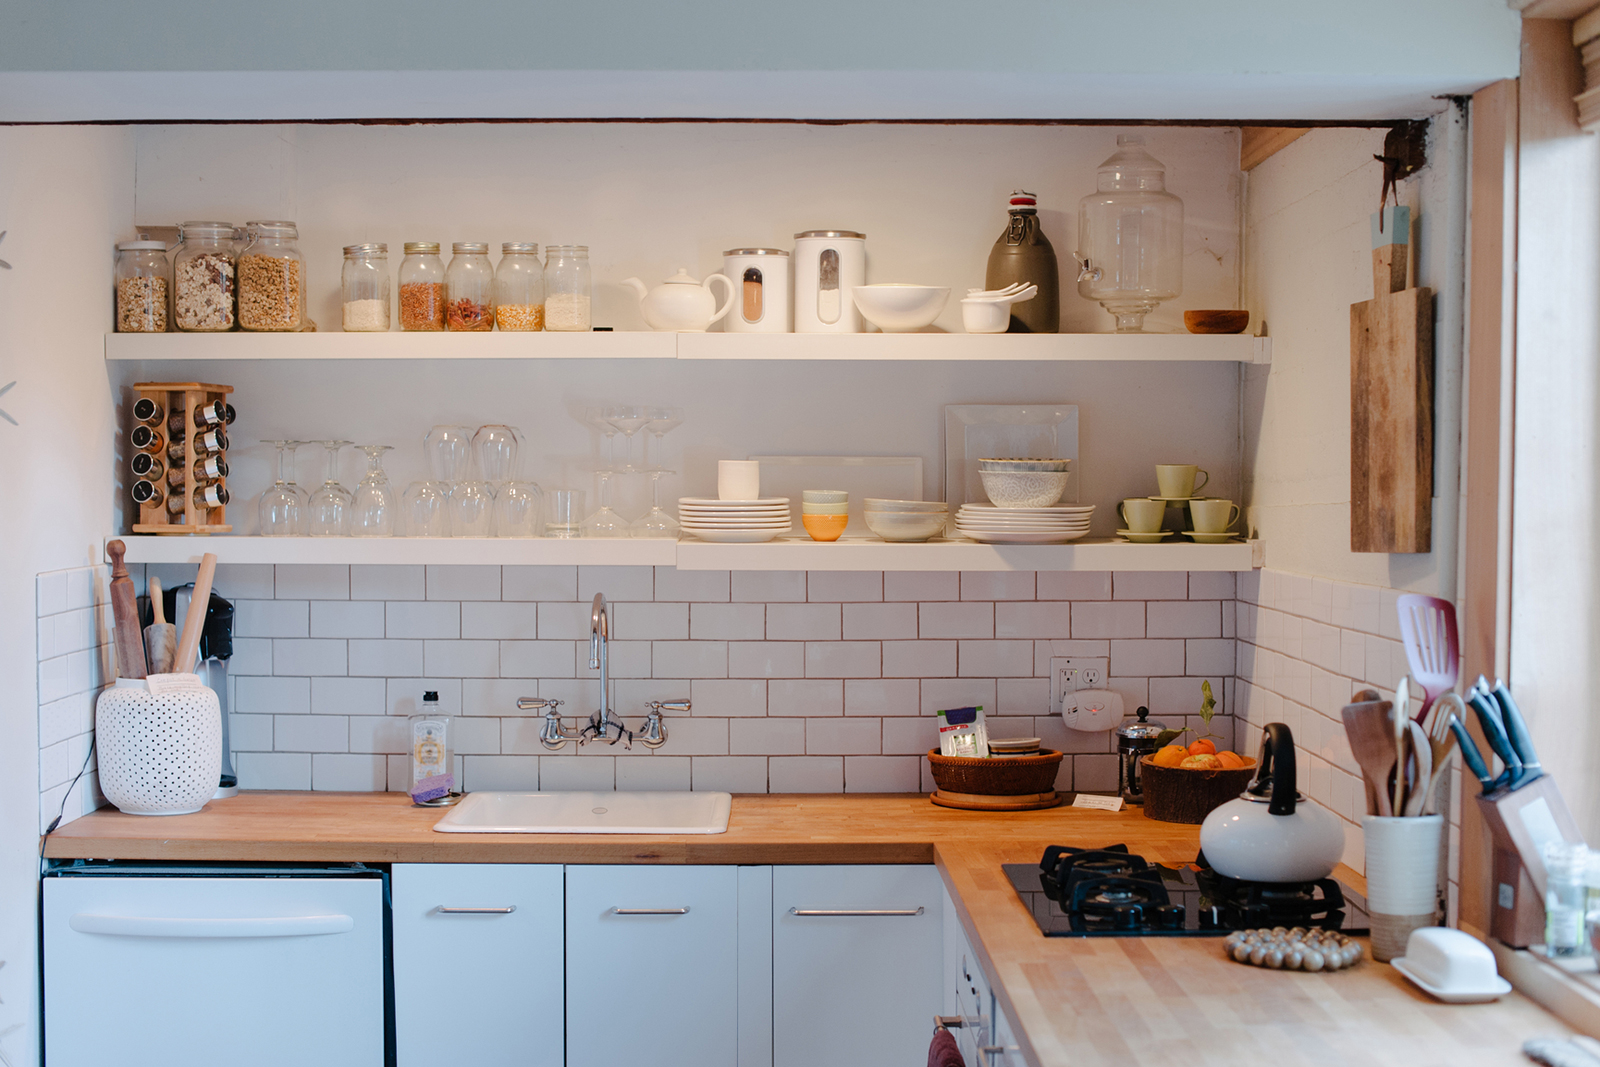 tips for kitchen remodeling remodeling kitchens Remodeling Regret 5 Kitchen Layout Ideas to Avoid